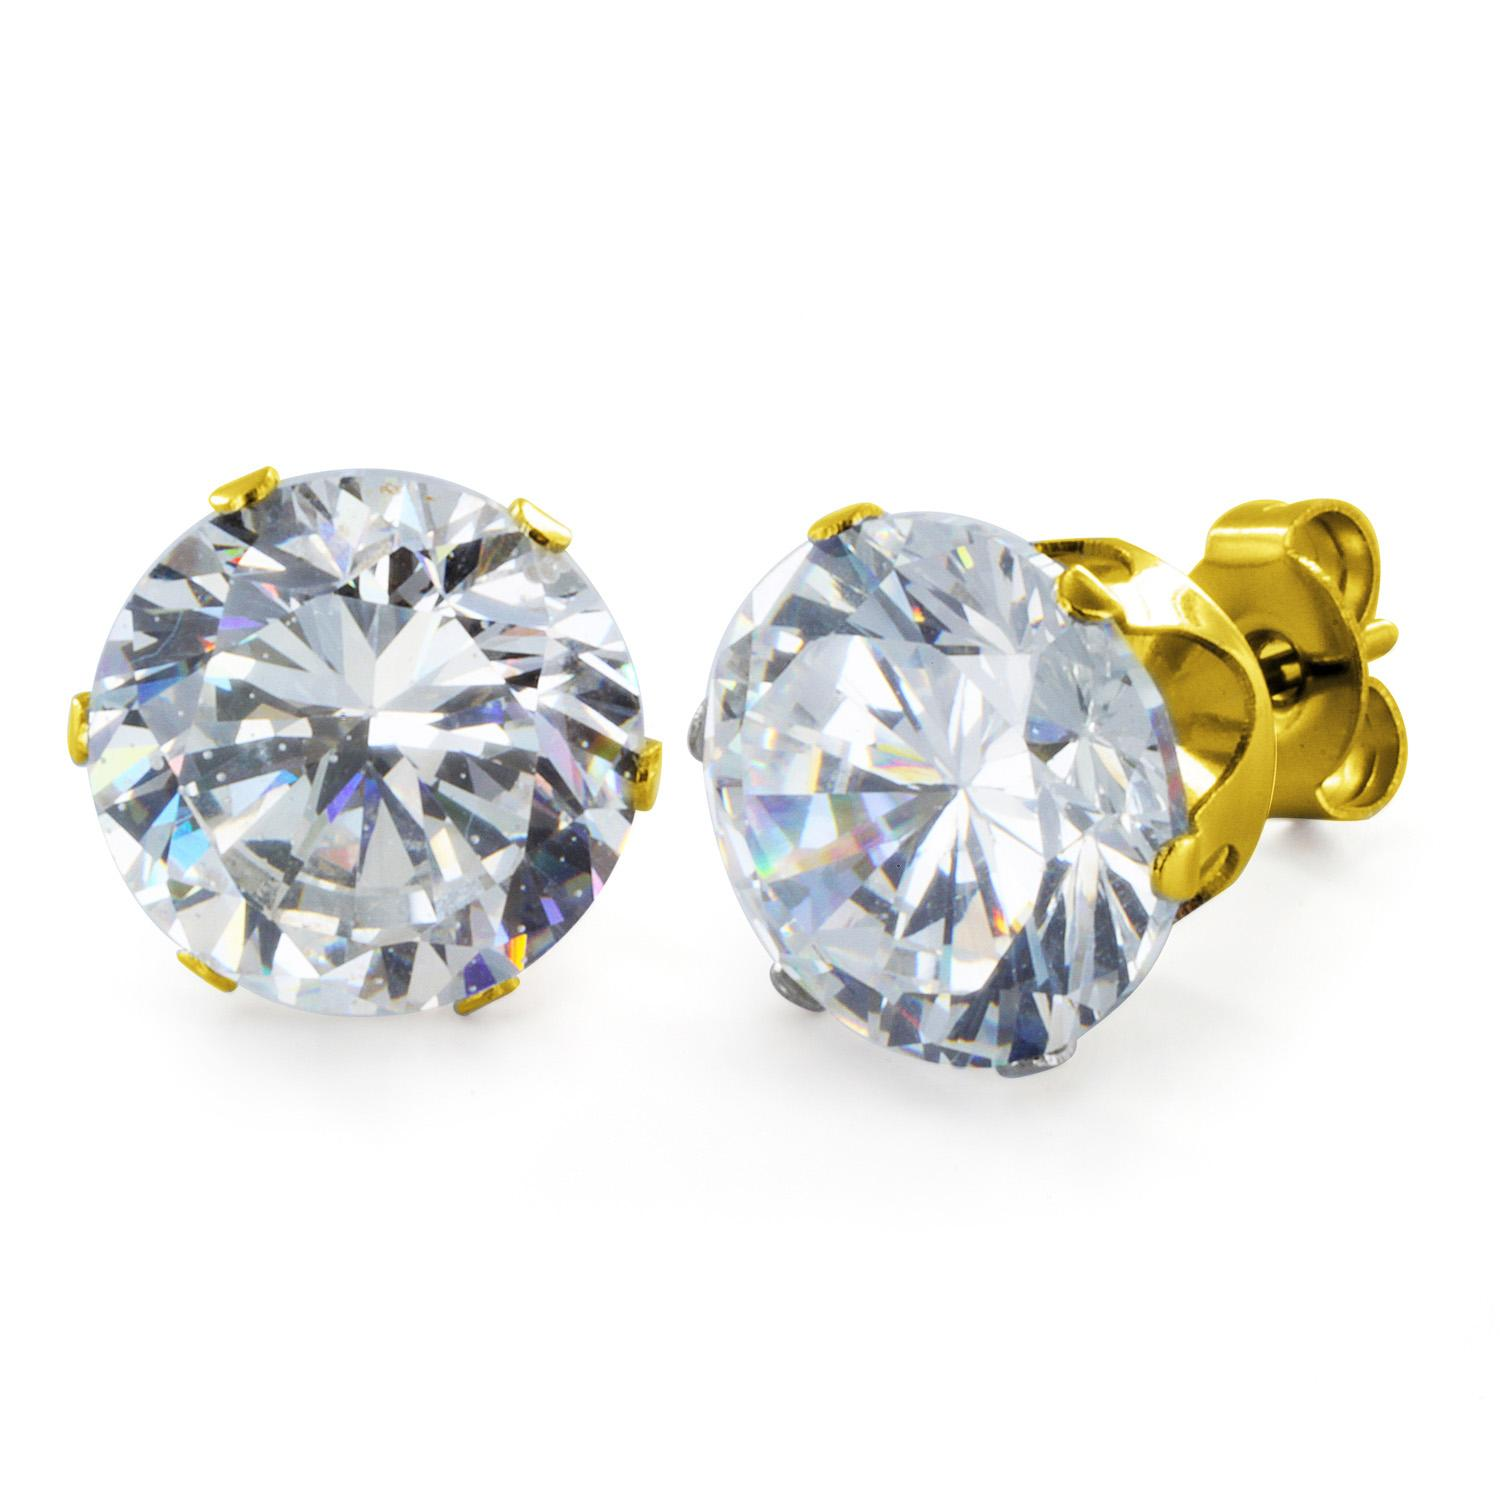 Gold Plated Stainless Steel Stud Earrings with Round Clear CZ - 10 mm